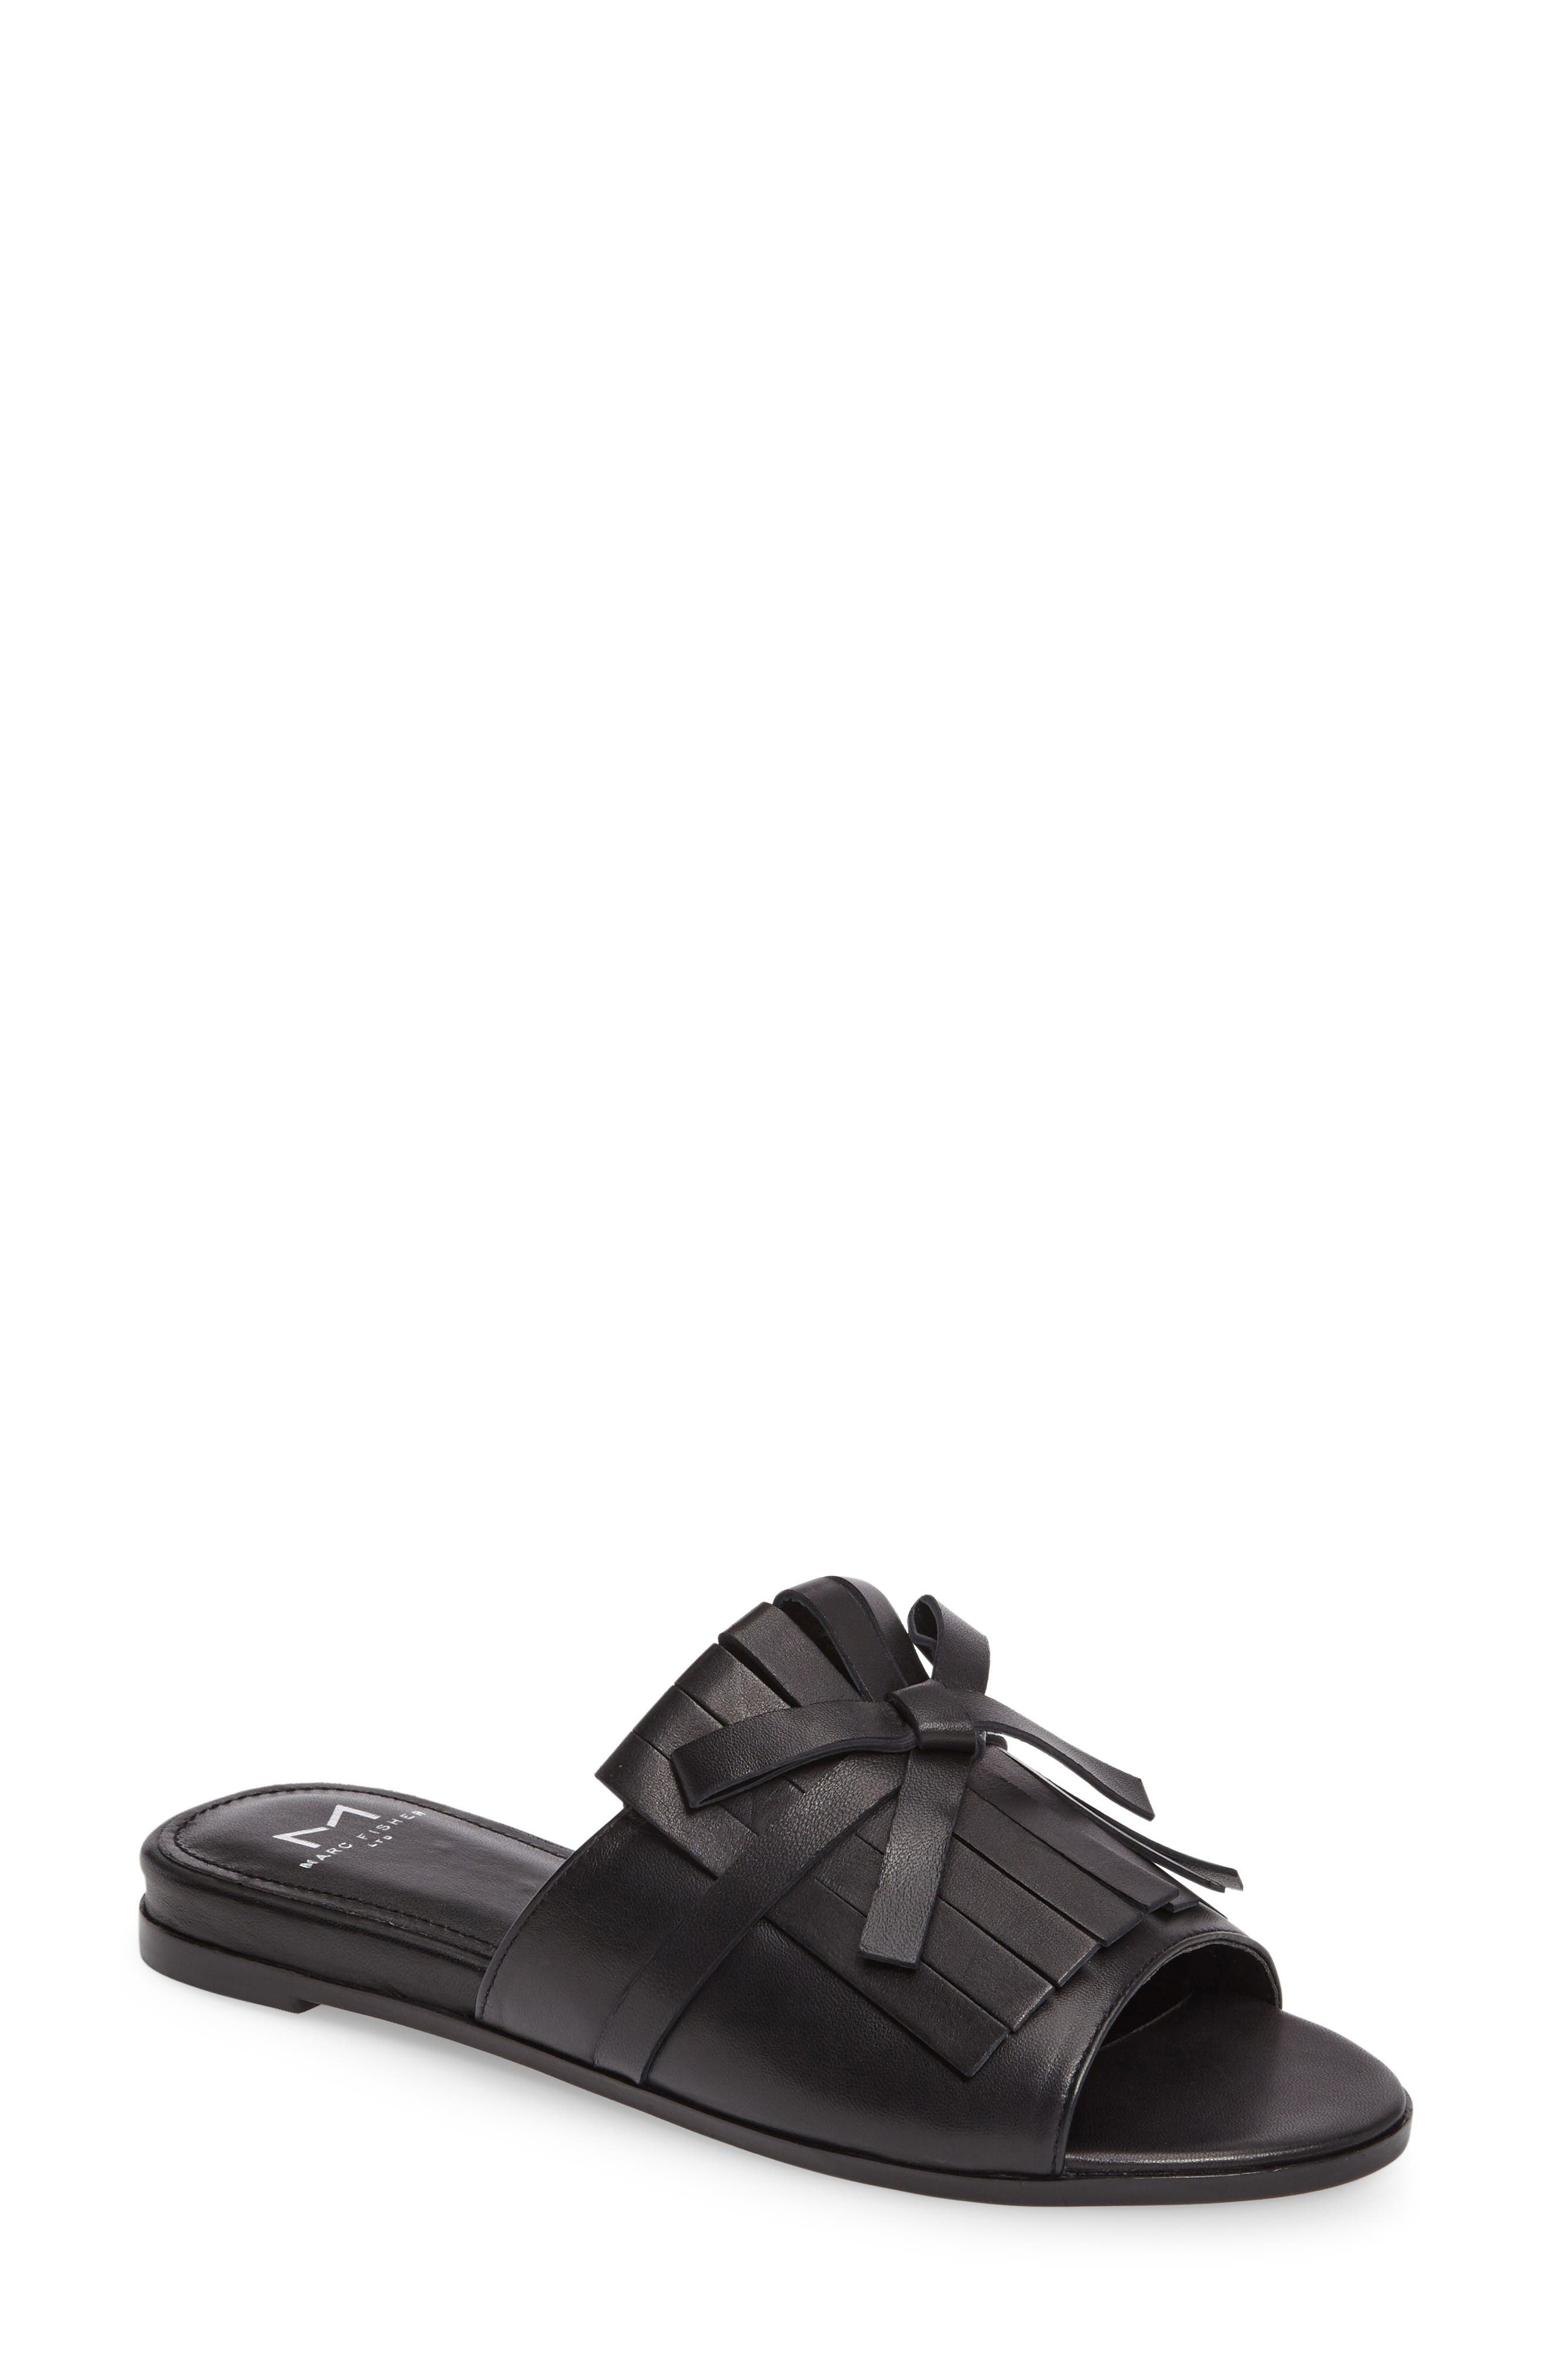 Whitley Slide Sandal,                         Main,                         color, 001